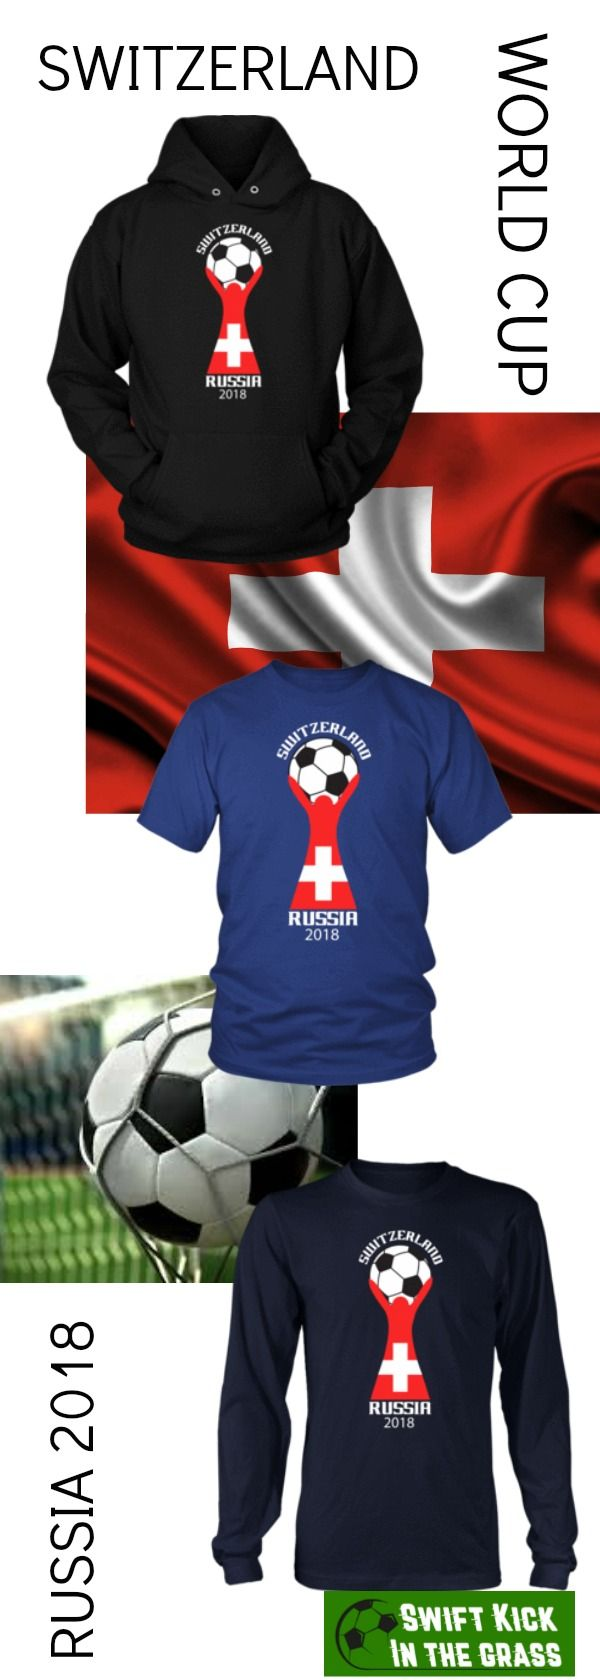 FIFA World Cup Switzerland National Team Soccer Victory in 2018 Russia WC. Men's and Women's. Rep your team in style. #Football #Sports #Futbol #Worldcup #Russia #Russia2018 #Livescore #FIFA #MLS #Goals #Goal #Soccer #Magista #Footballtwo #Golazos #Bundesliga #Fussball #Lovefootball #Footballgame #Footballseason #Footballplayer #Footballer #Soccer #Soccergame #Soccerball #Soccerlife #Soccerplayer #Soccerislife #Soccerteam #Sports #Futbol #Footy #Footballtime #Footballmatch #Footballers…